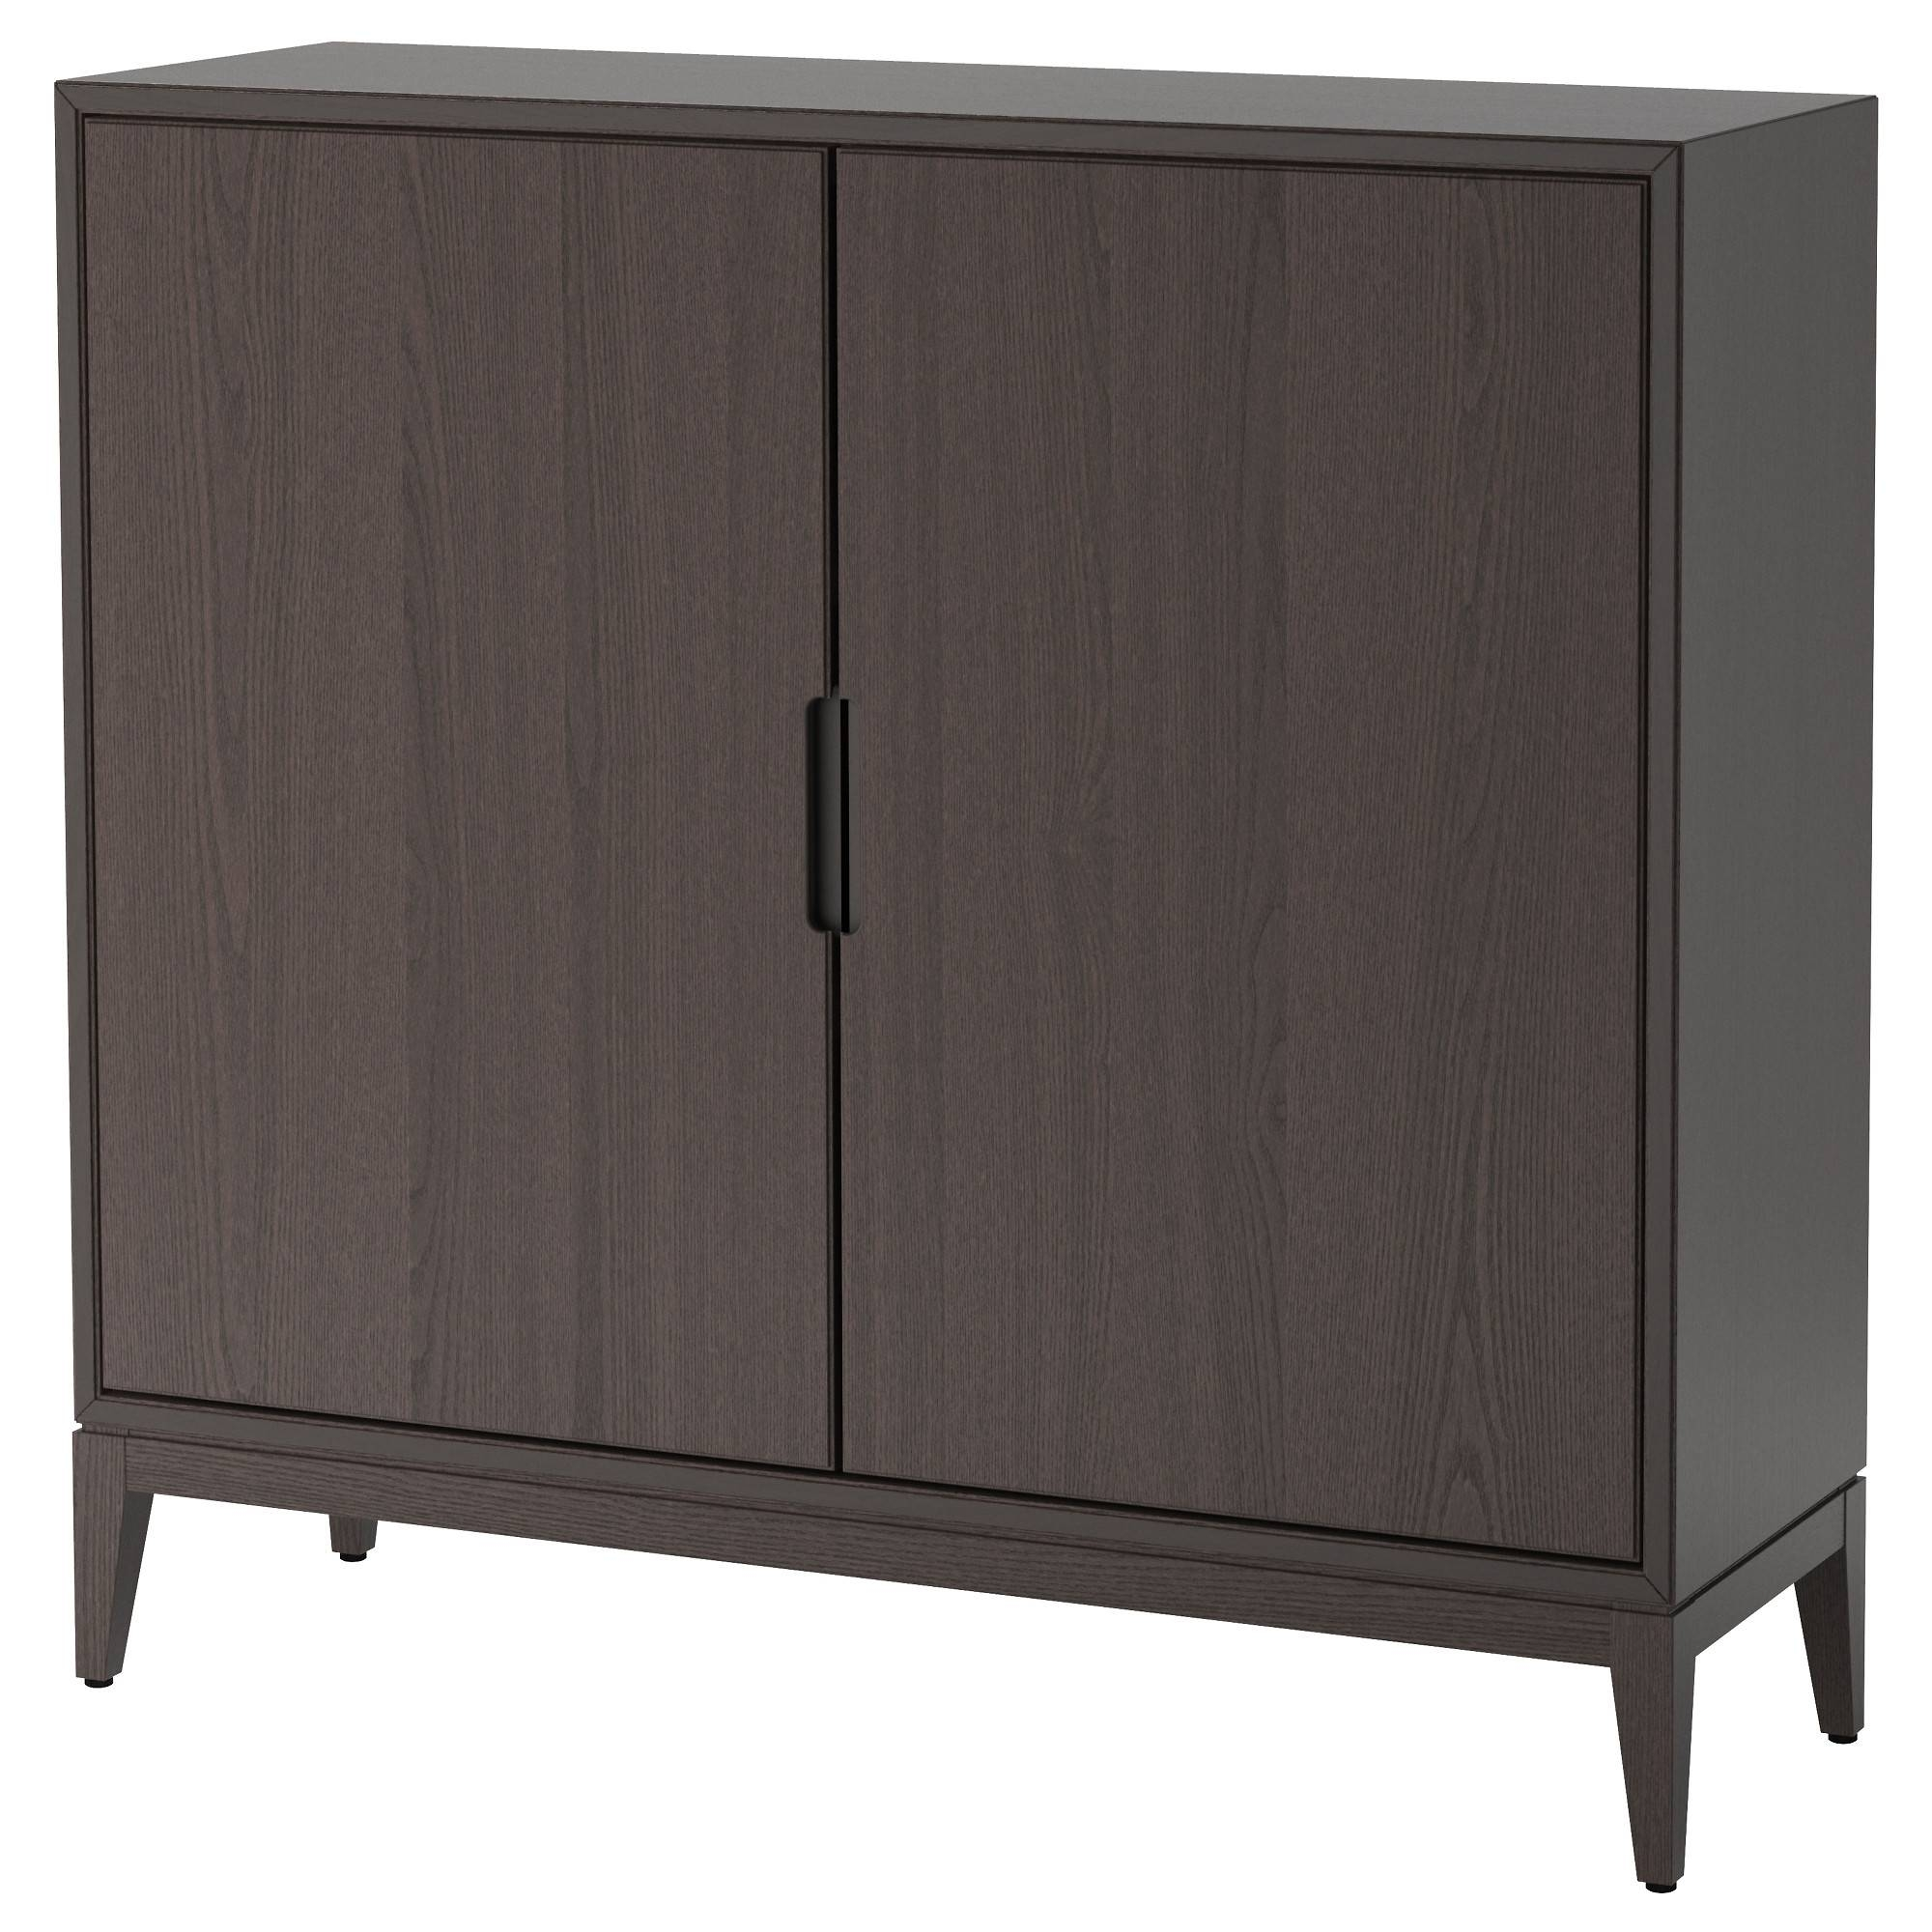 Cabinets & Sideboards – Ikea With Regard To Small Sideboard Cabinet (#1 of 20)